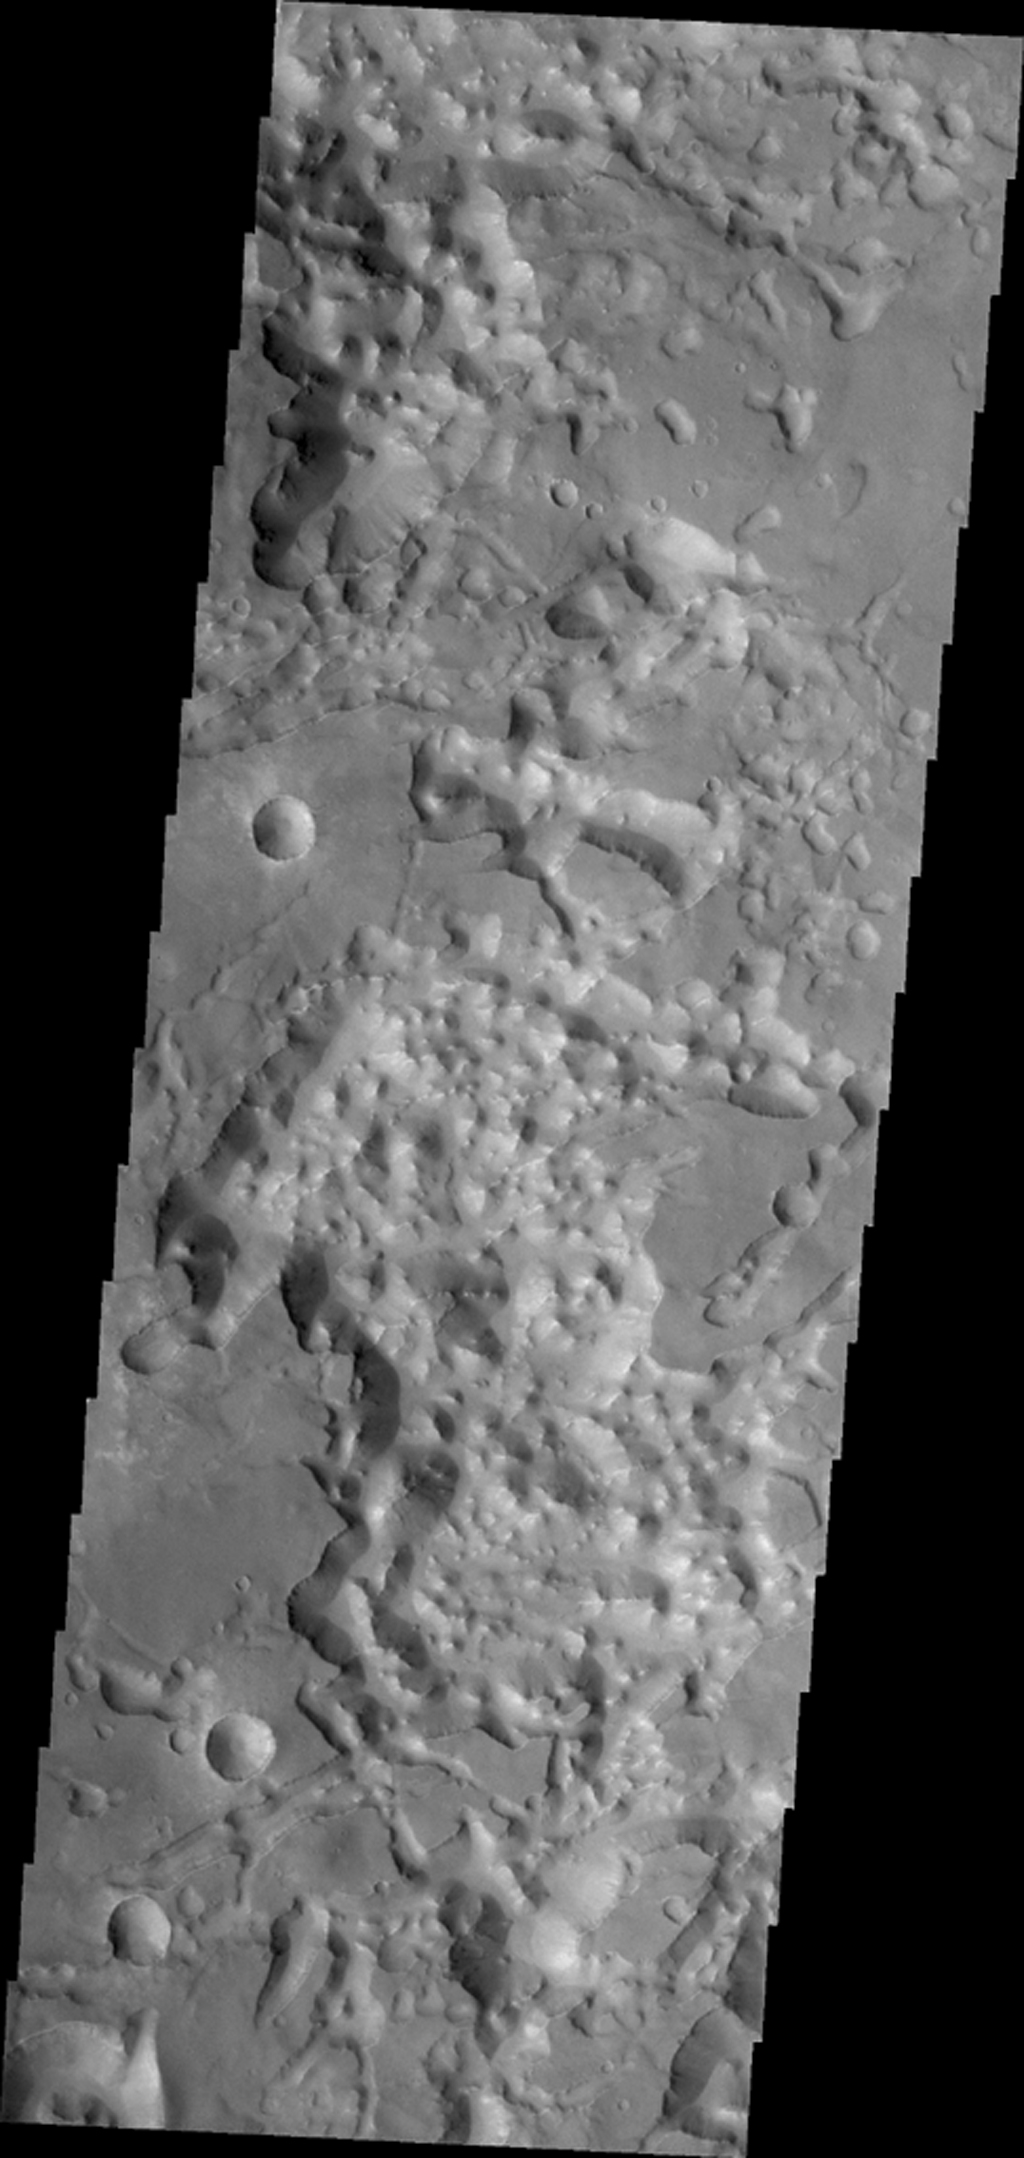 The eastern end of Valles Marineris opens into huge low lying channels filled with the mound and valley terrain called chaos. This image from NASA's 2001 Mars Odyssey shows part of Eos Chaos.